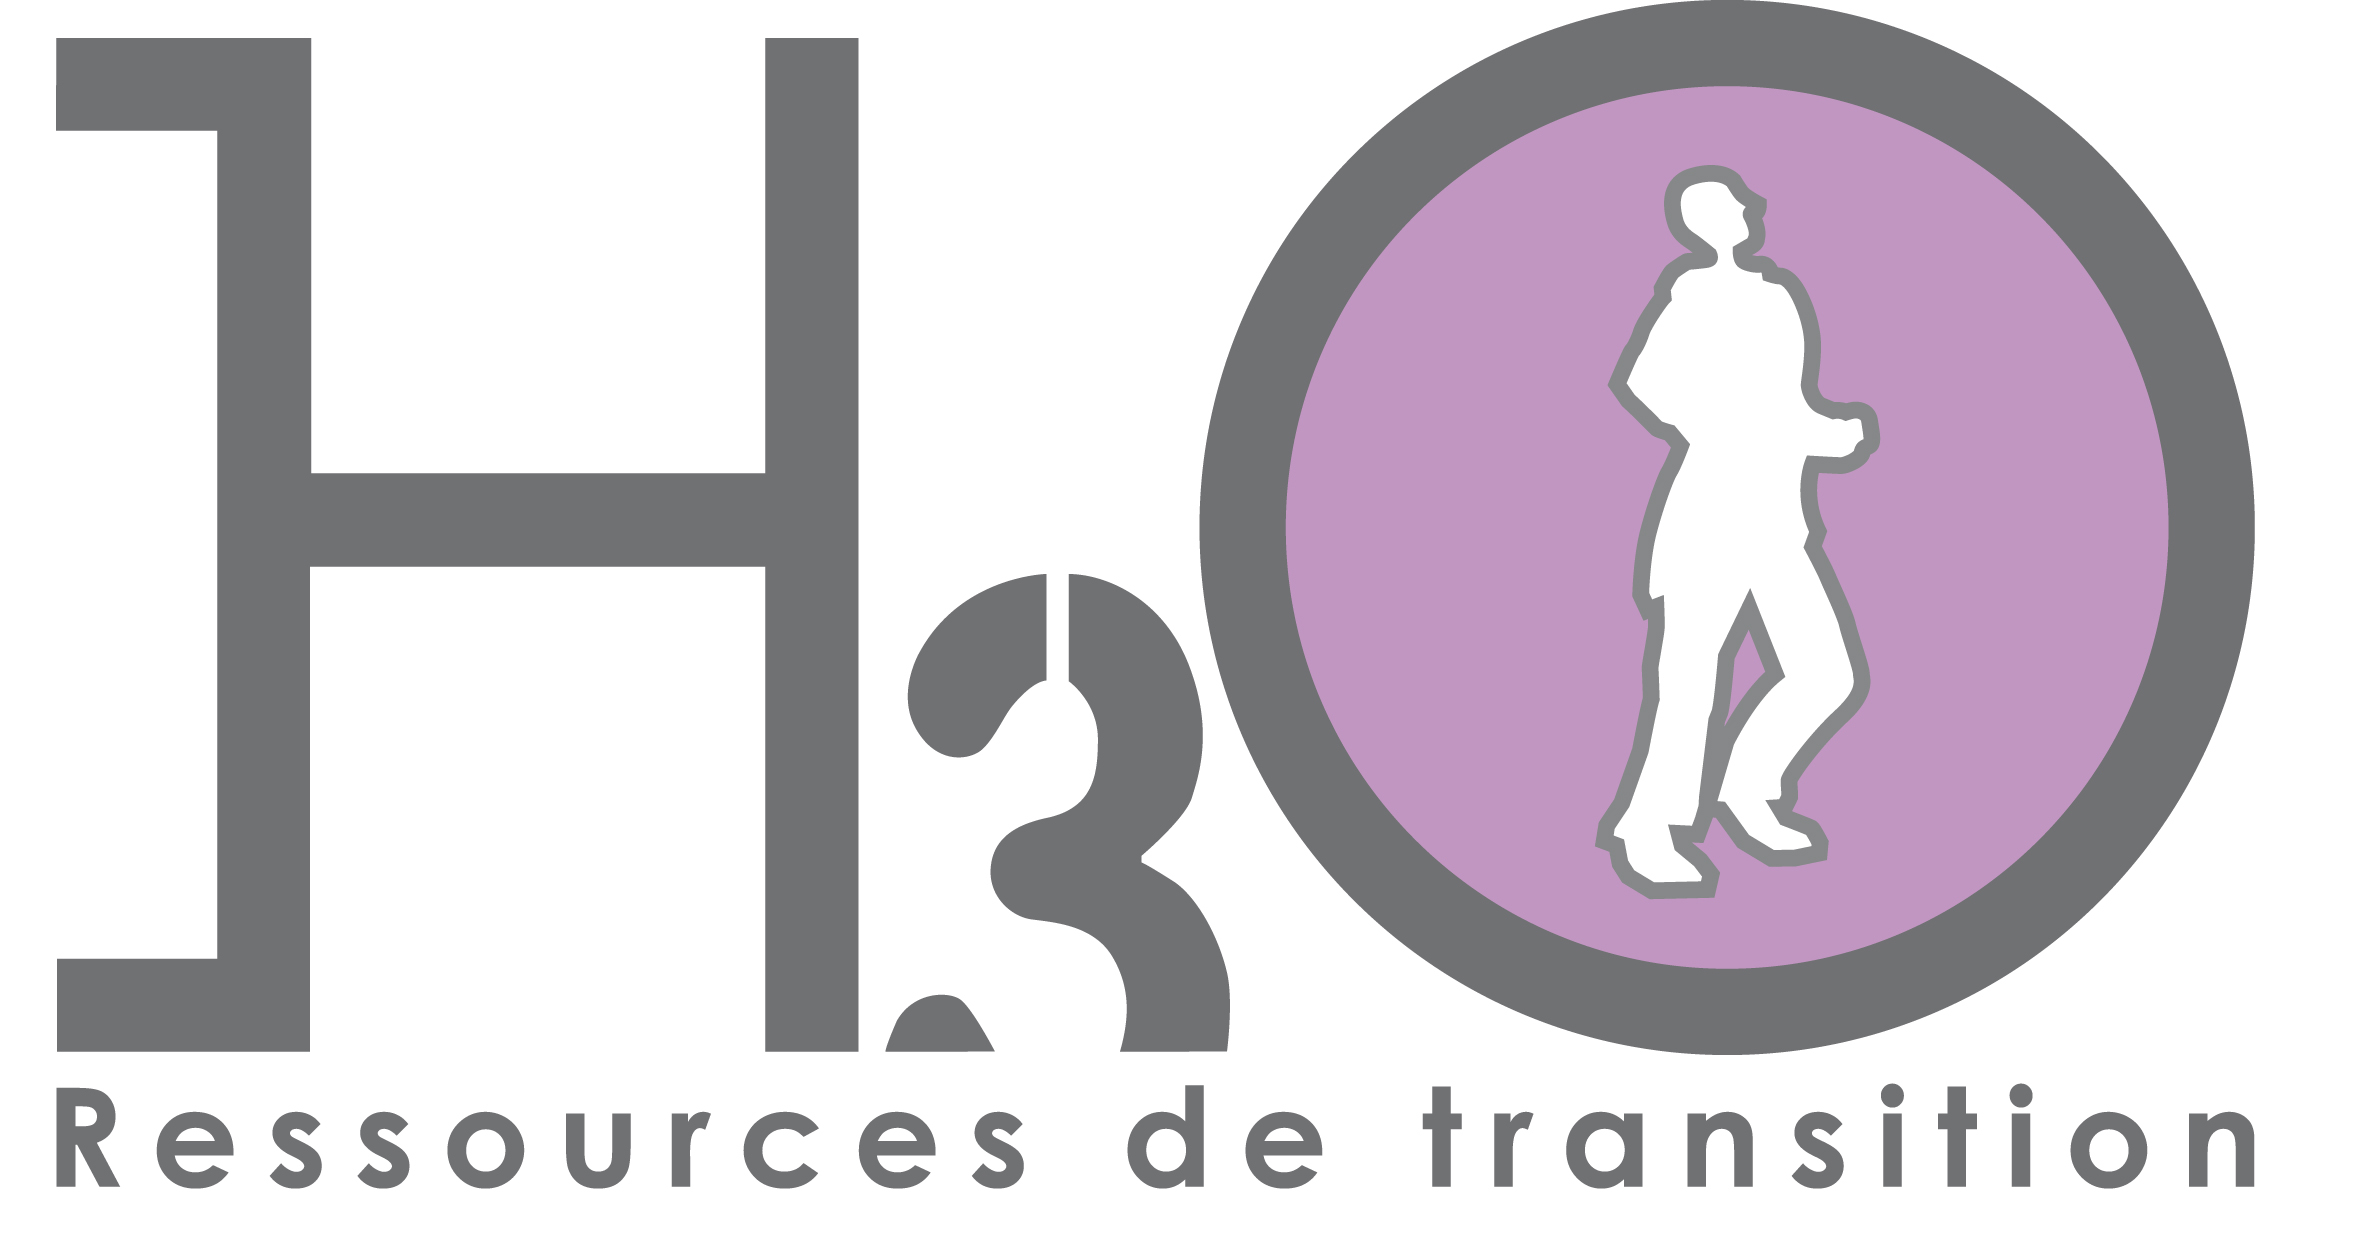 H3O ressources de transition